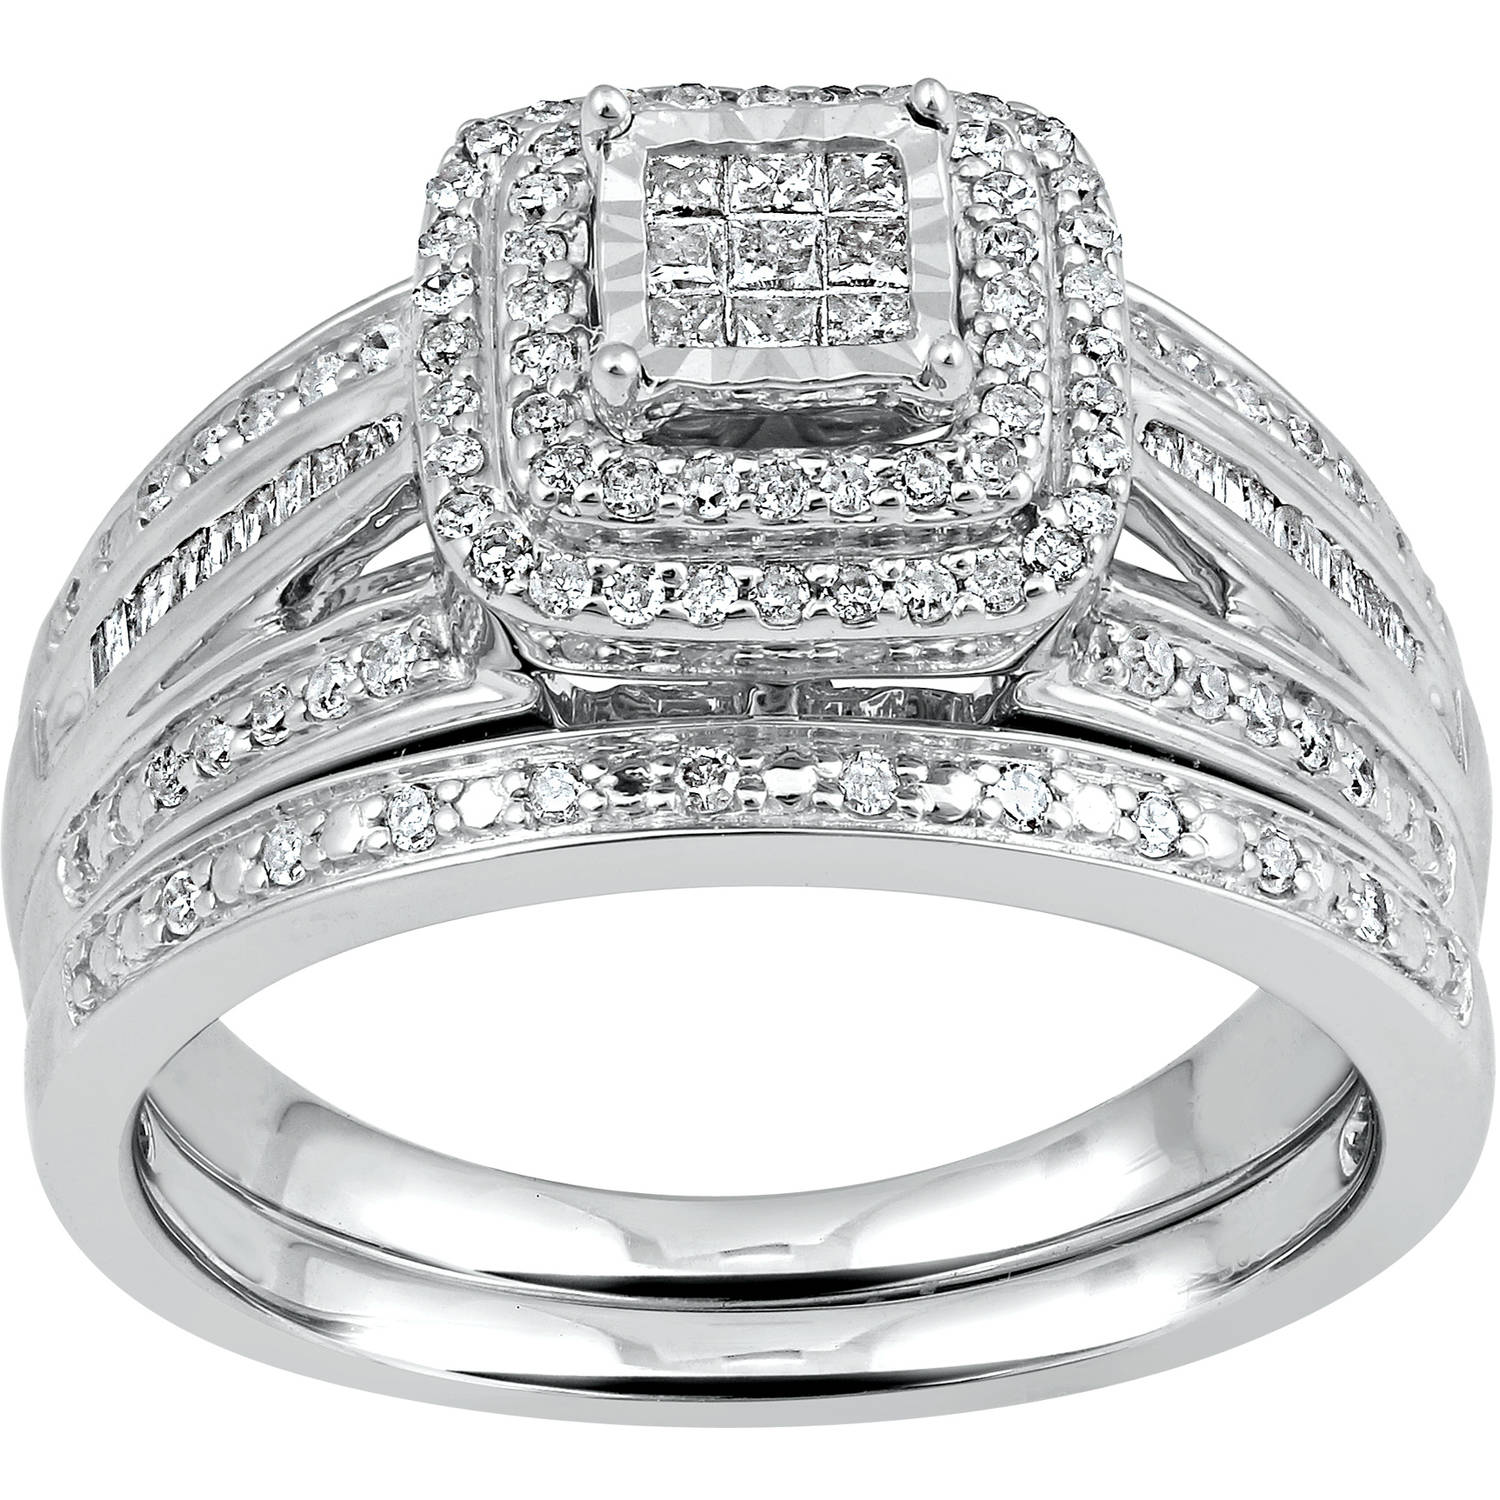 Forever Bride 1/2 Carat T.W. Diamond Princess Quad Sterling Silver Bridal Set